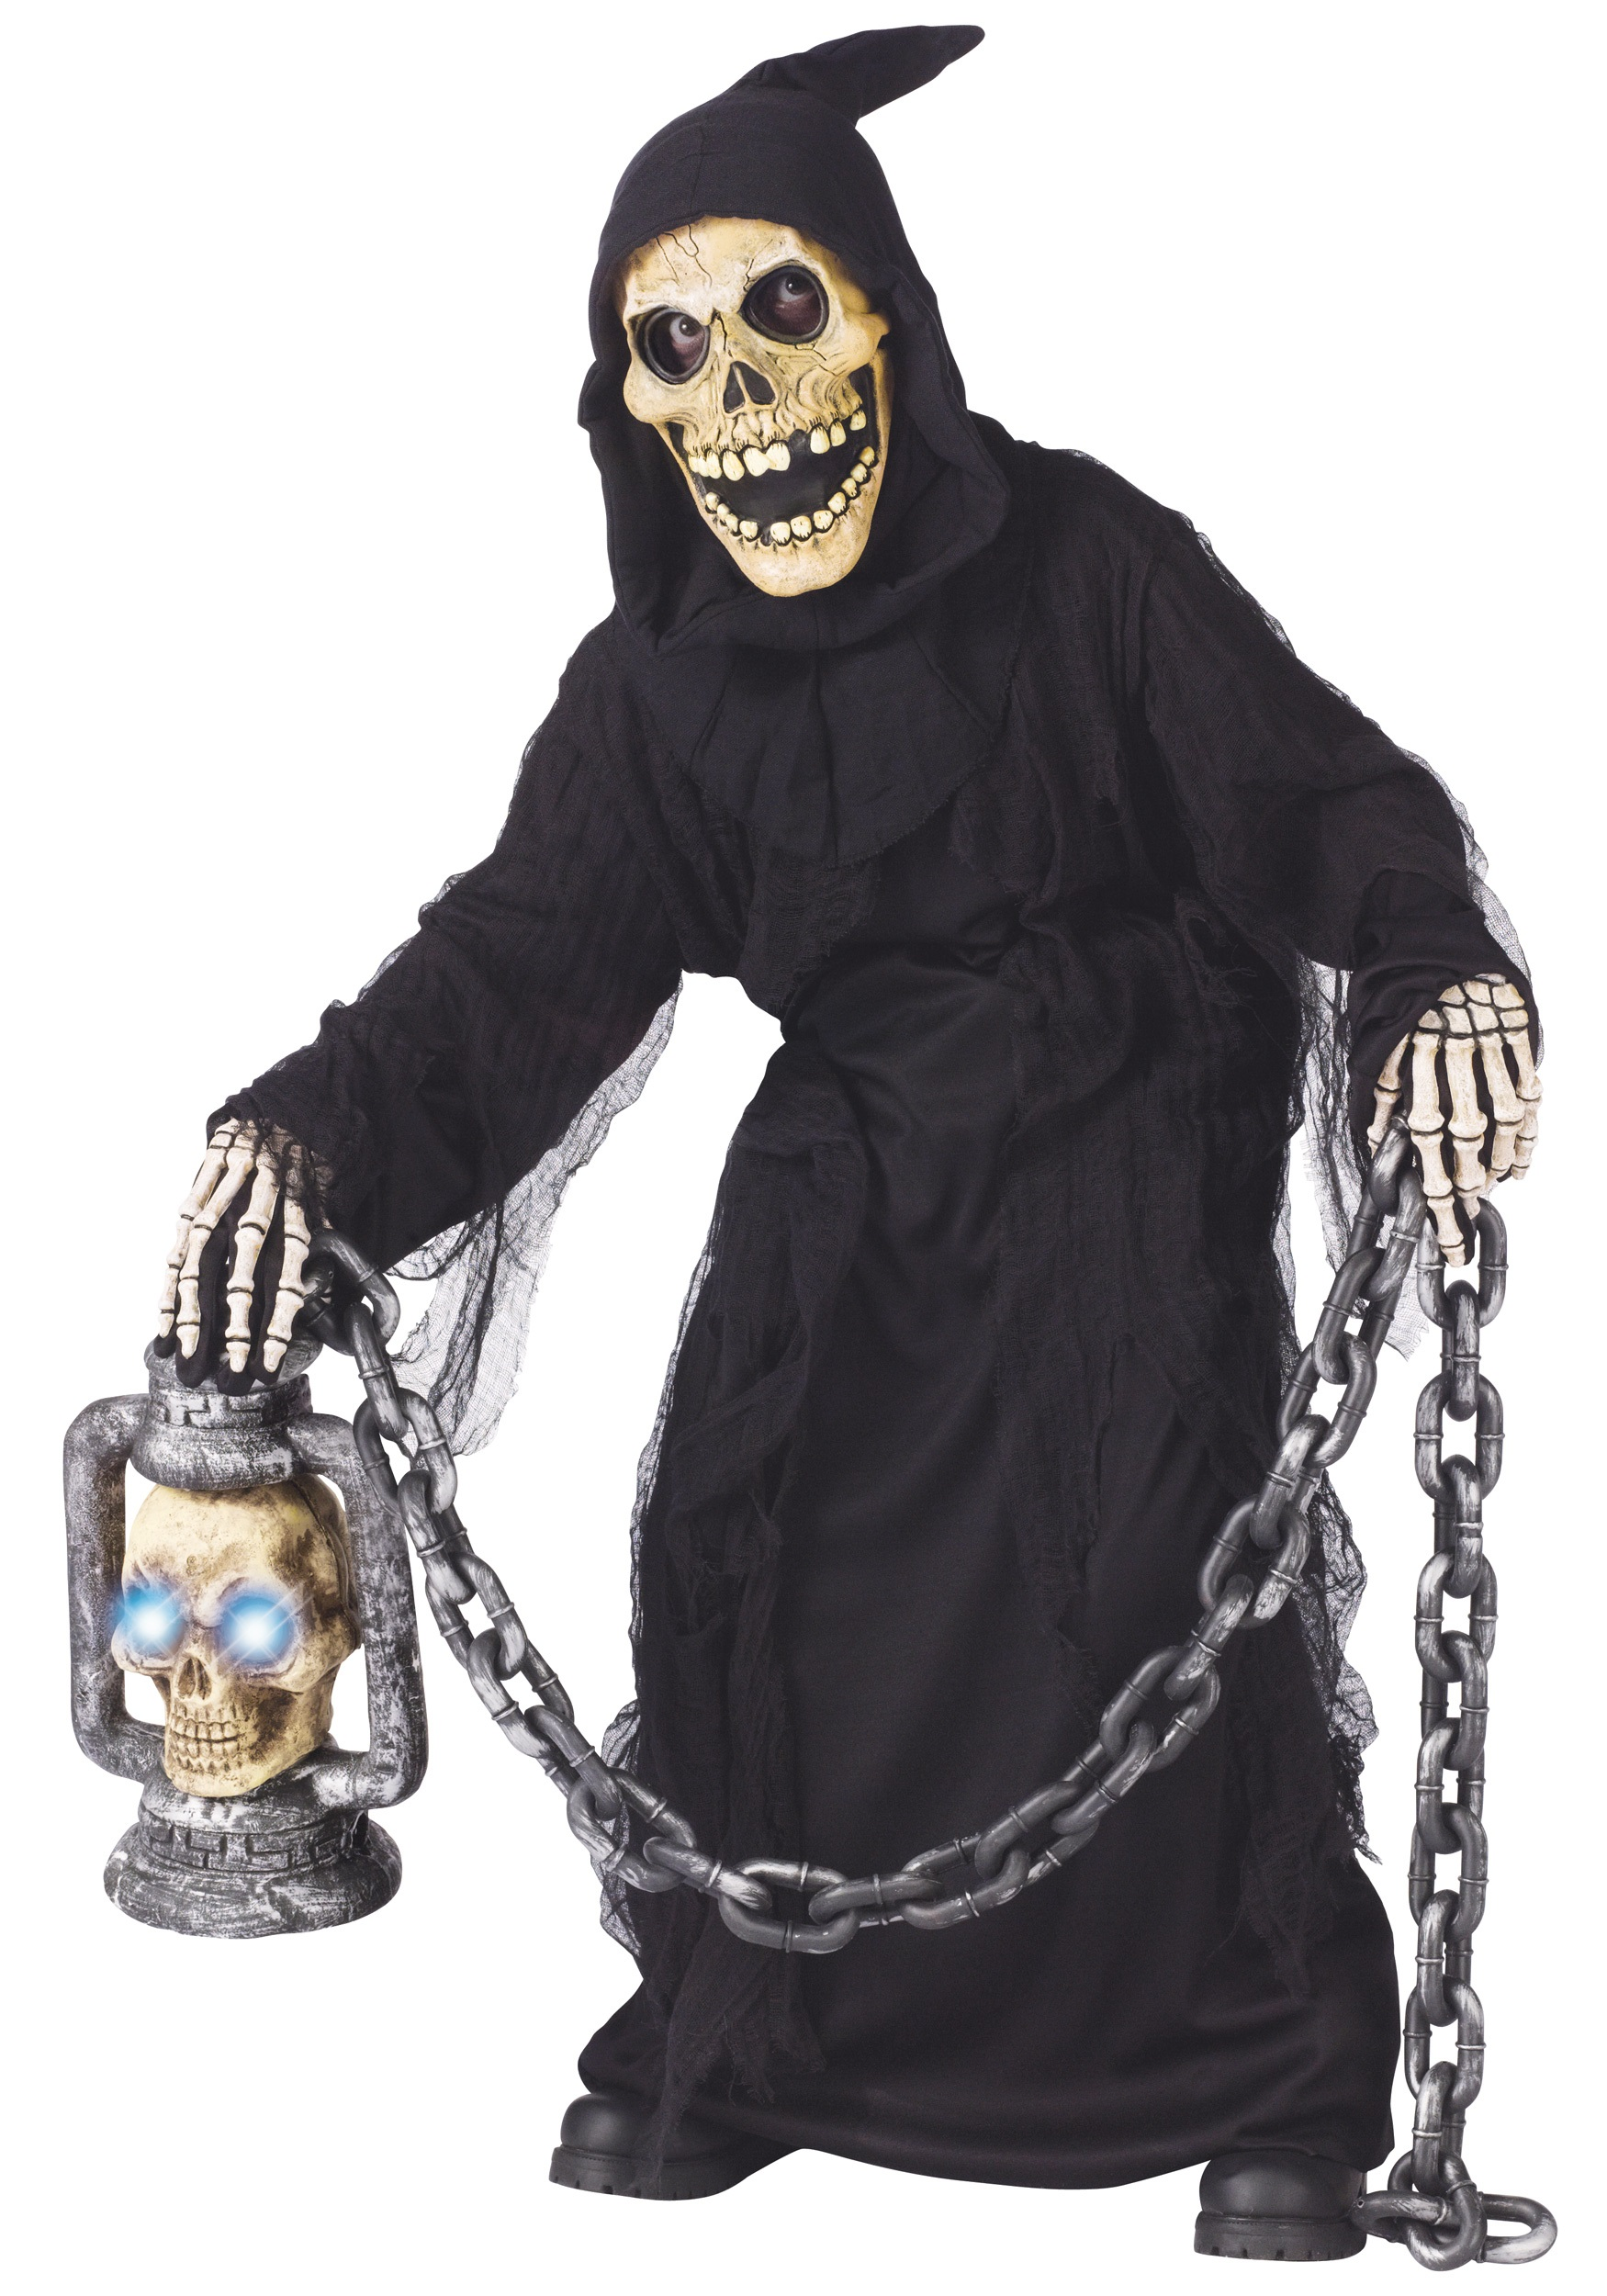 Boys halloween costume ideas this kids grim reaper costume